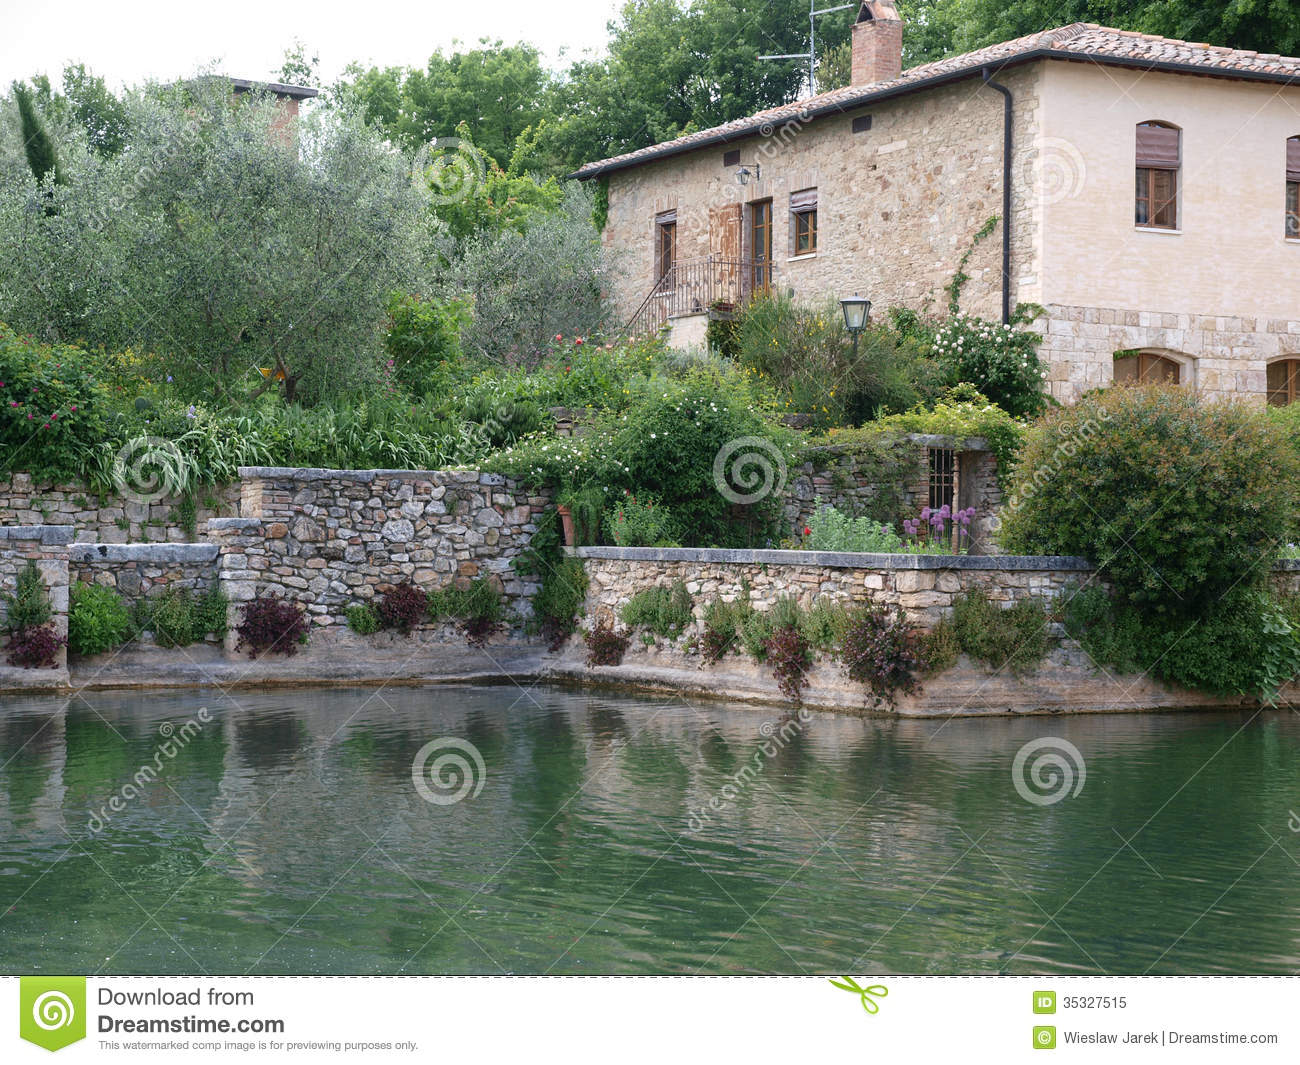 Bagno vignoni in tuscany royalty free stock photo image 35327515 - Bagno vignoni spa ...